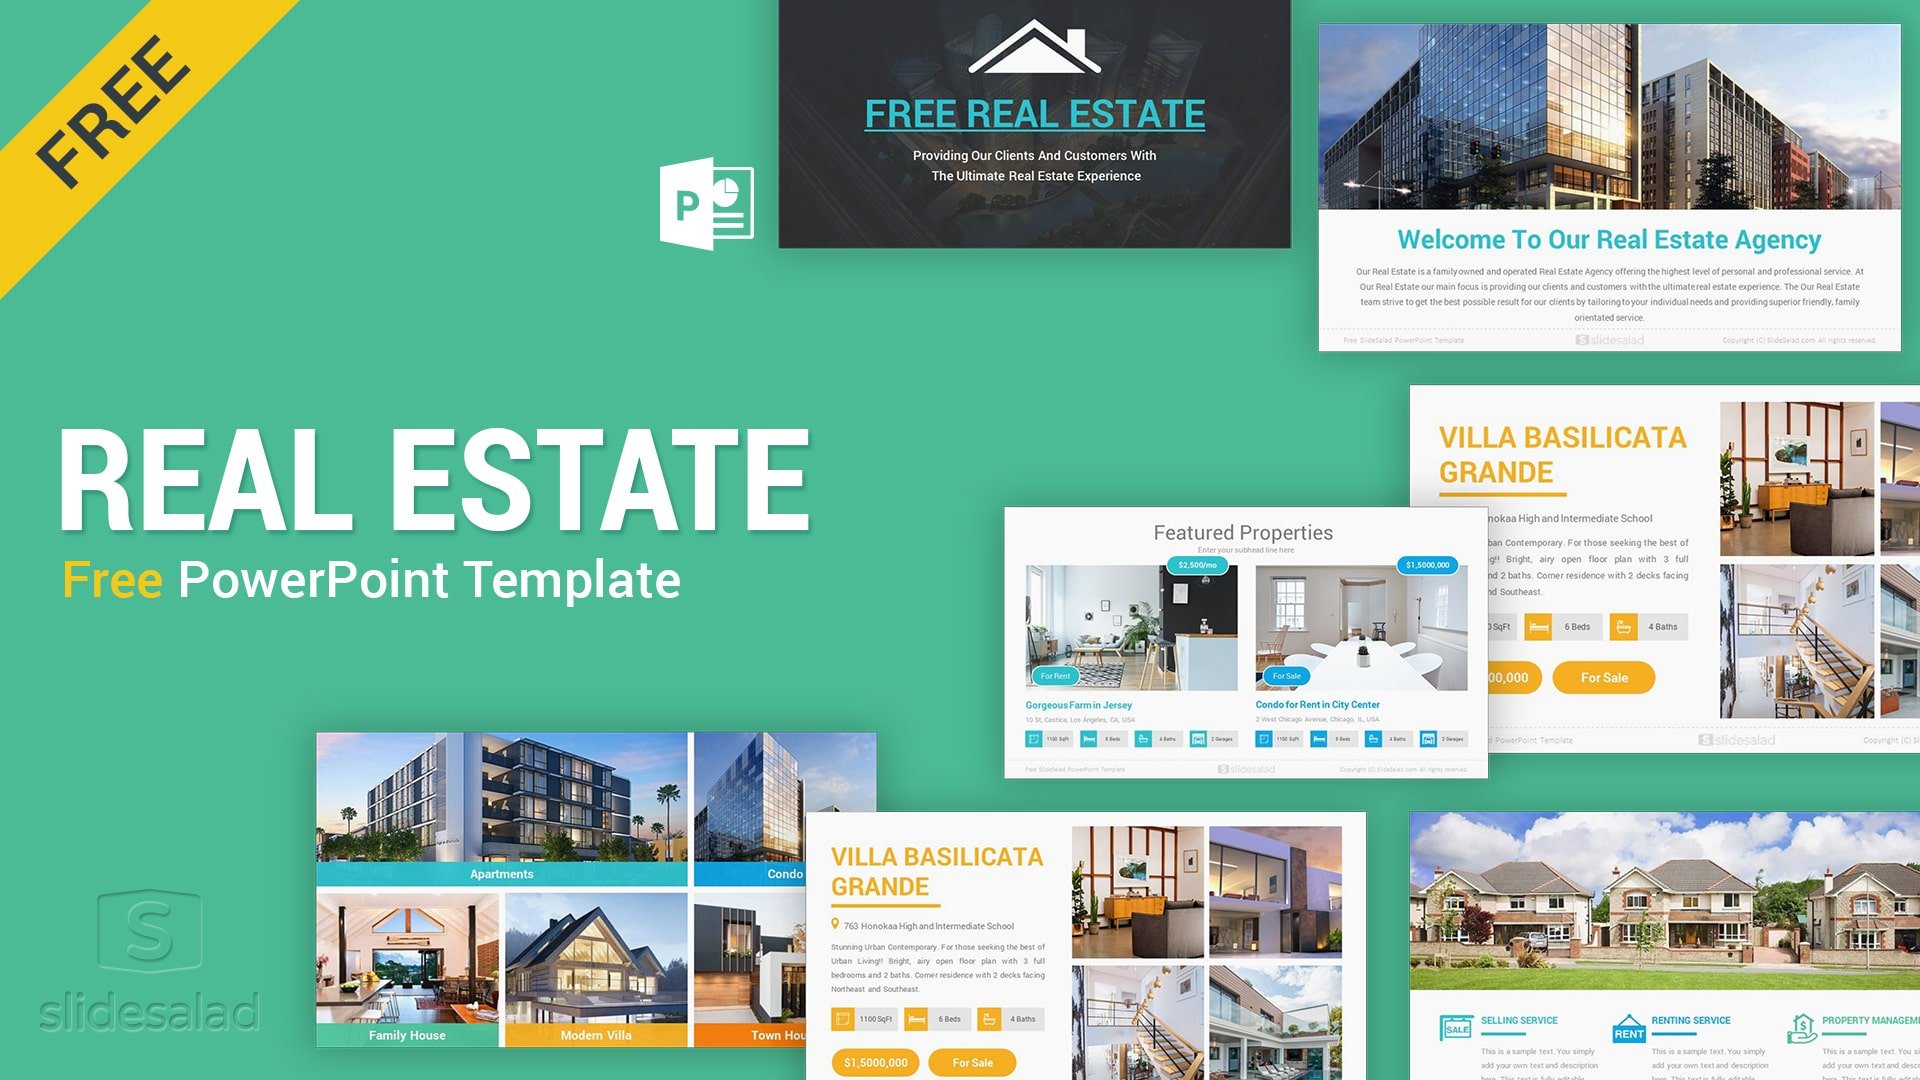 Free Real Estate PowerPoint Template Design – Nice Property Listing PPT Template for Buy, Rent, and Lease